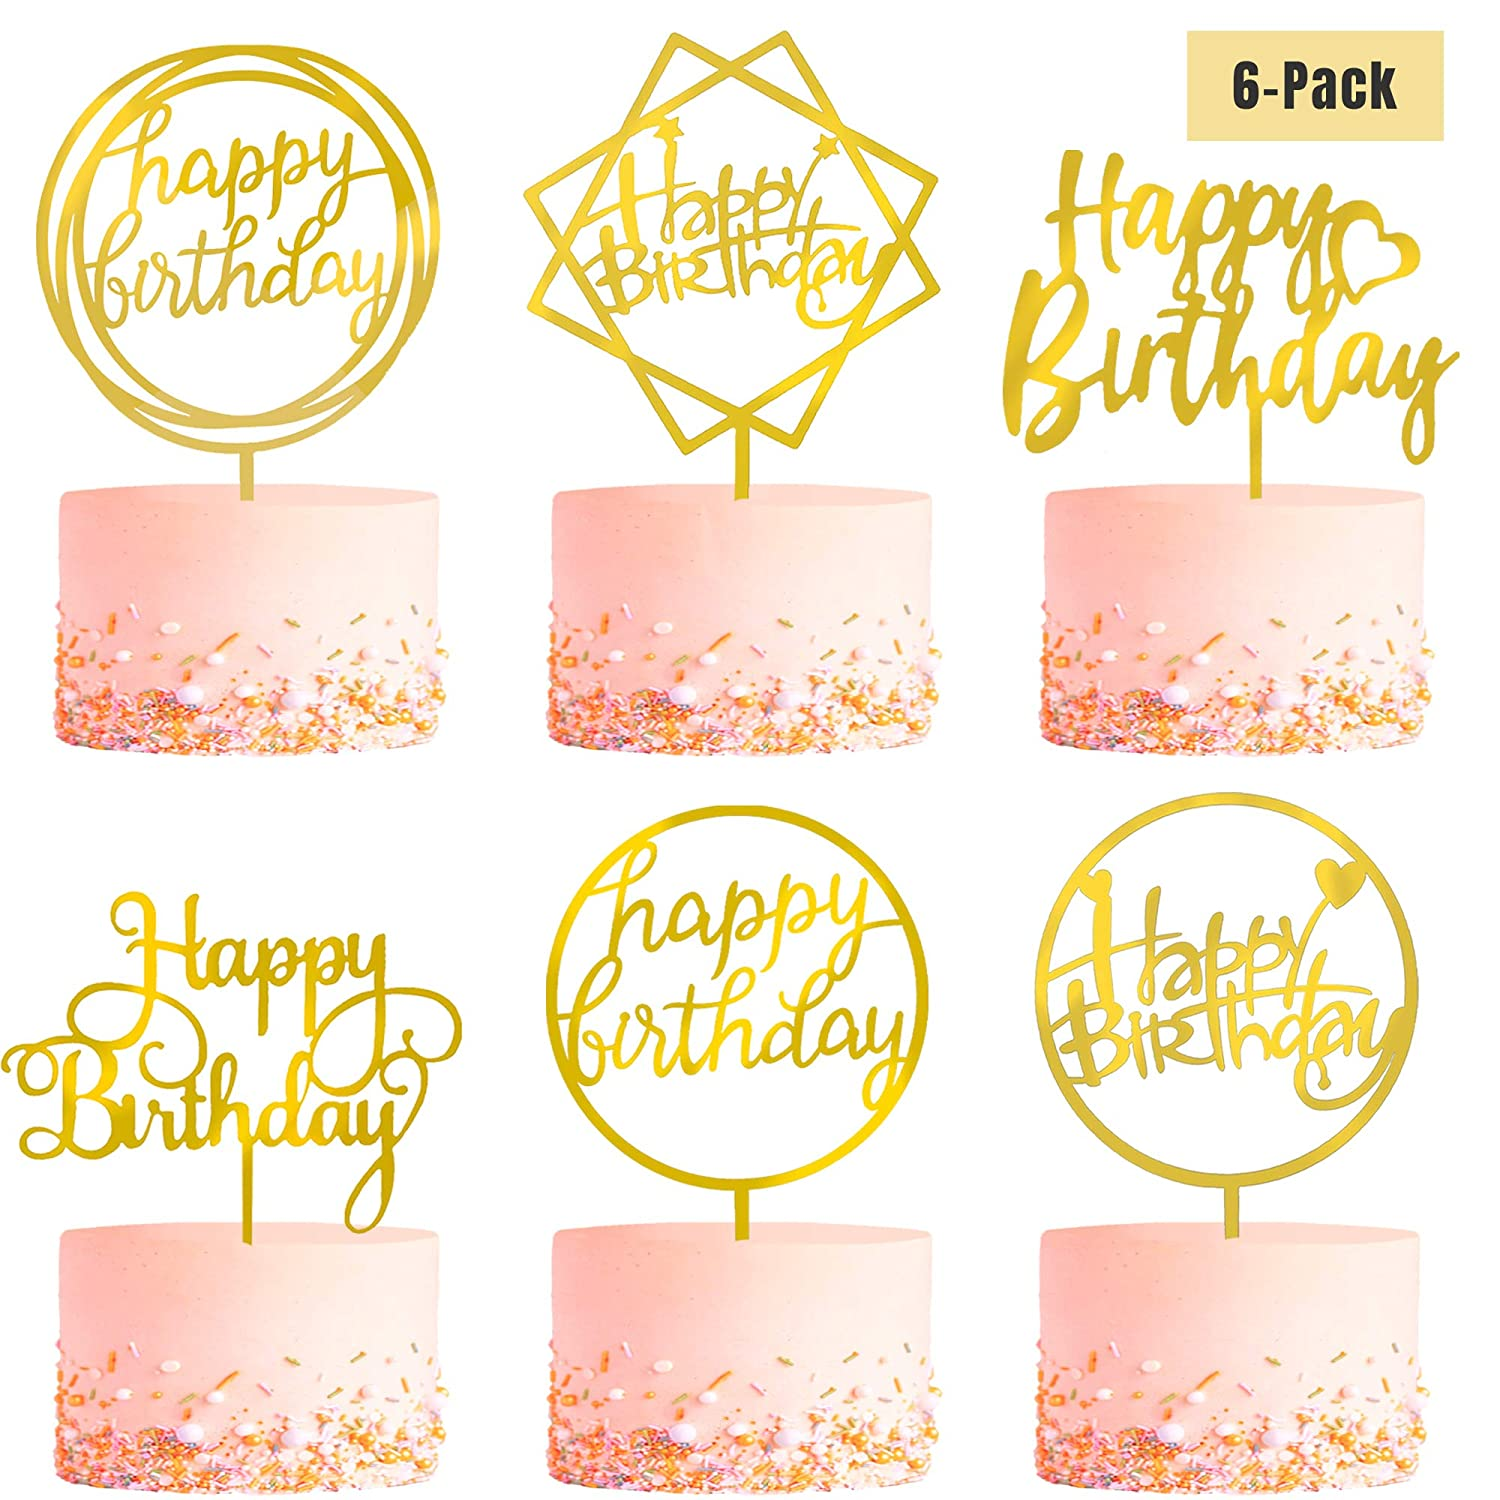 Stupendous 6 Pack Gold Birthday Cake Topper Set Double Sided Glitter Personalised Birthday Cards Paralily Jamesorg